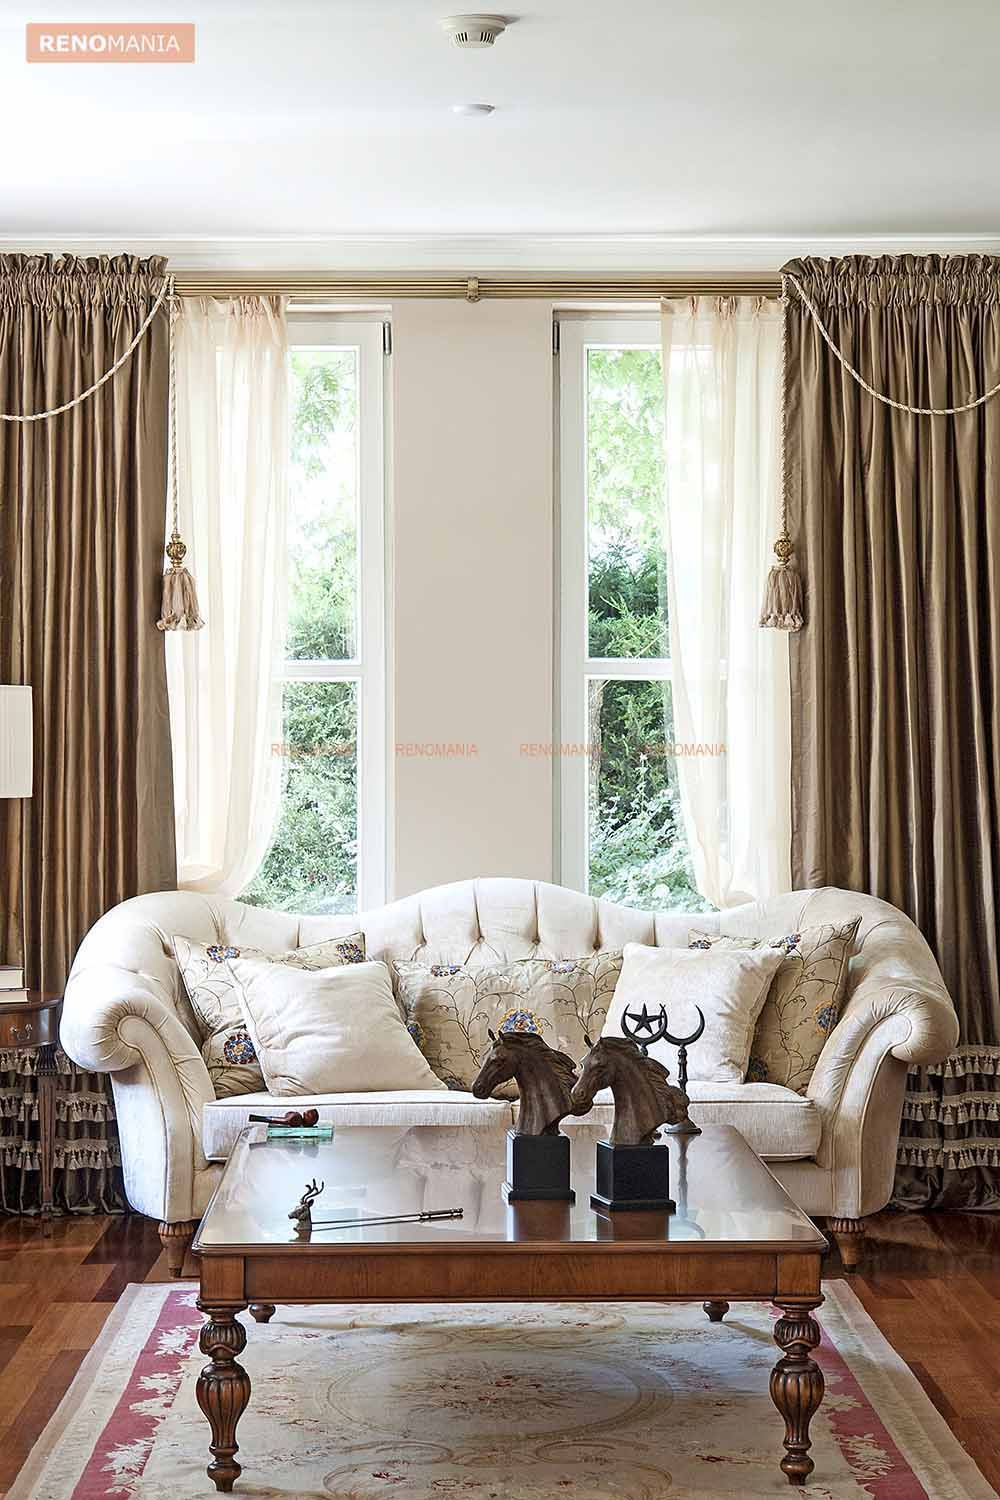 Renomania Blog Make Your Living Beautiful CurtainsLiving Room Curtains